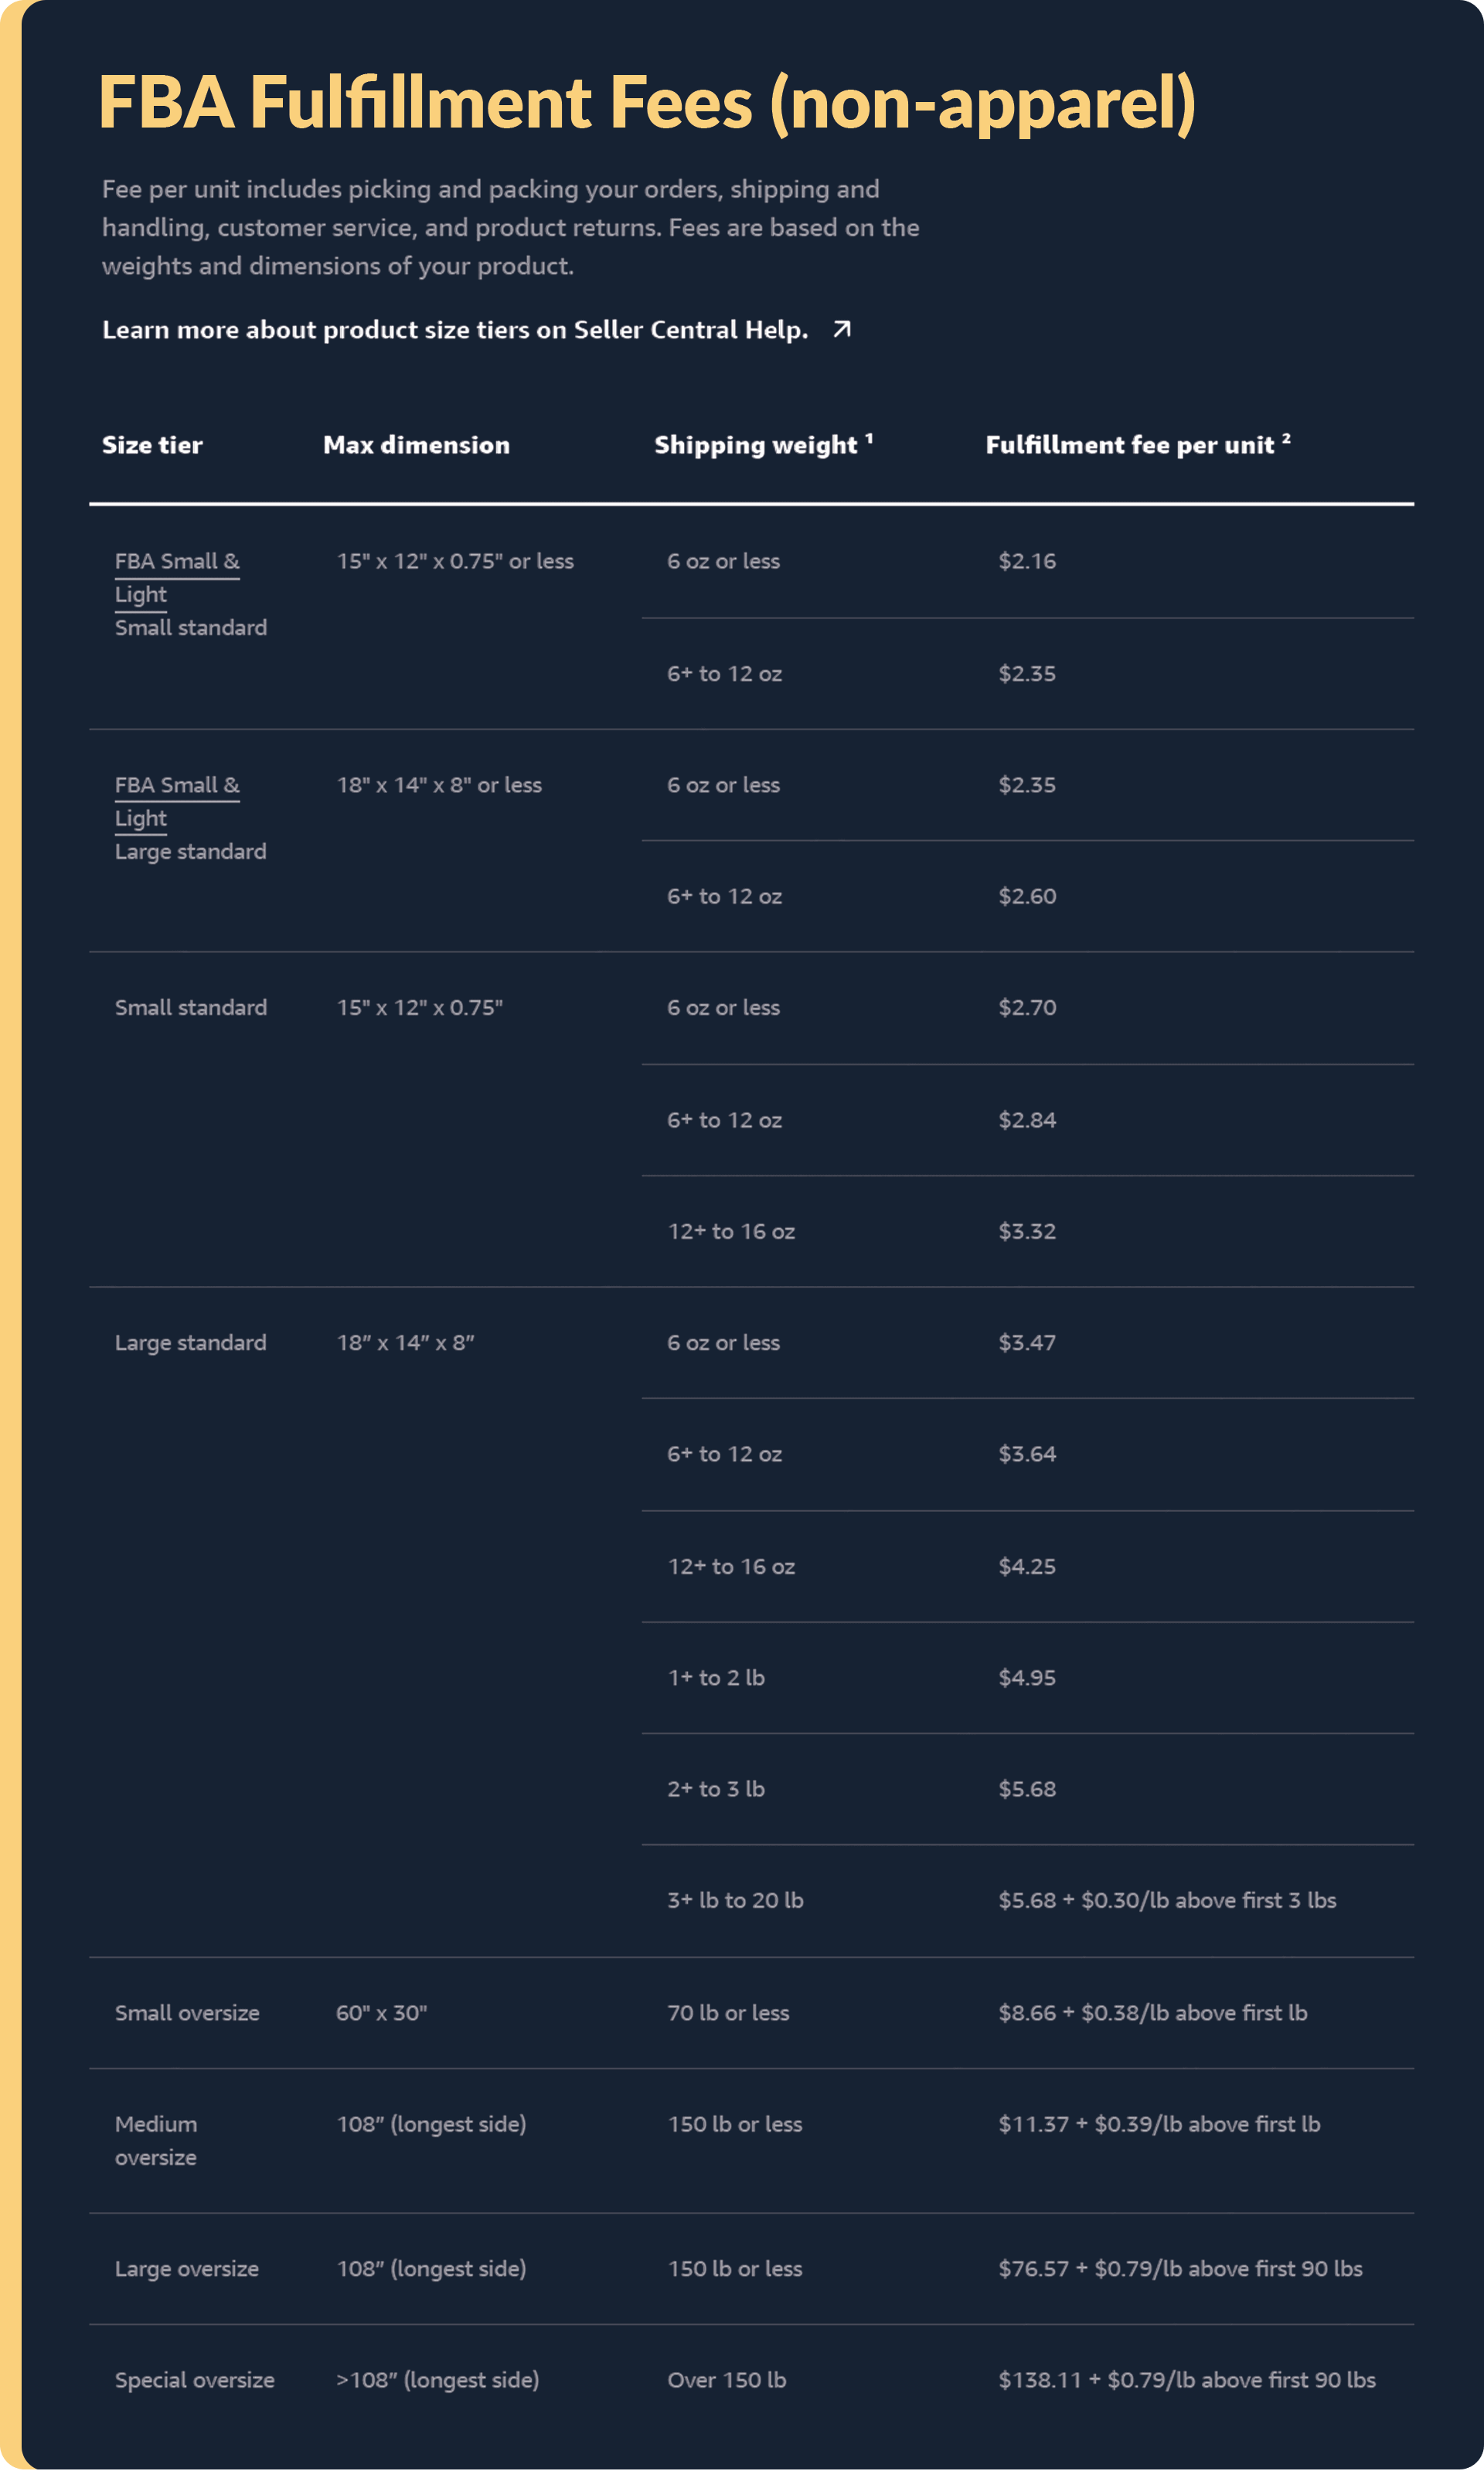 FBA fees from Amazon's site for non-apparel items.